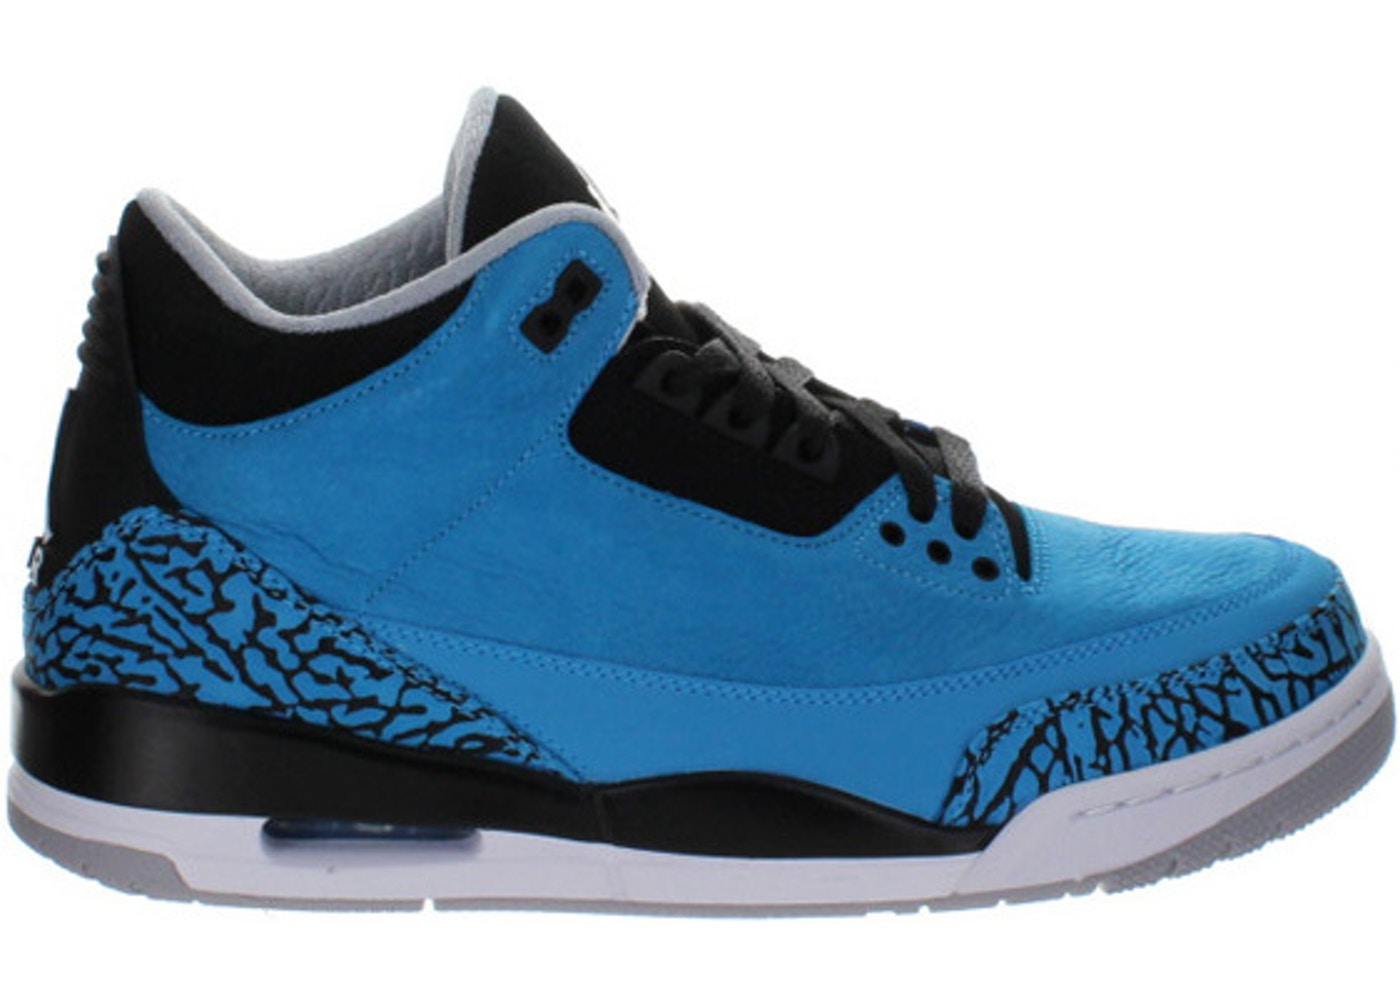 reputable site 3c070 6a833 Buy Air Jordan 3 Shoes   Deadstock Sneakers